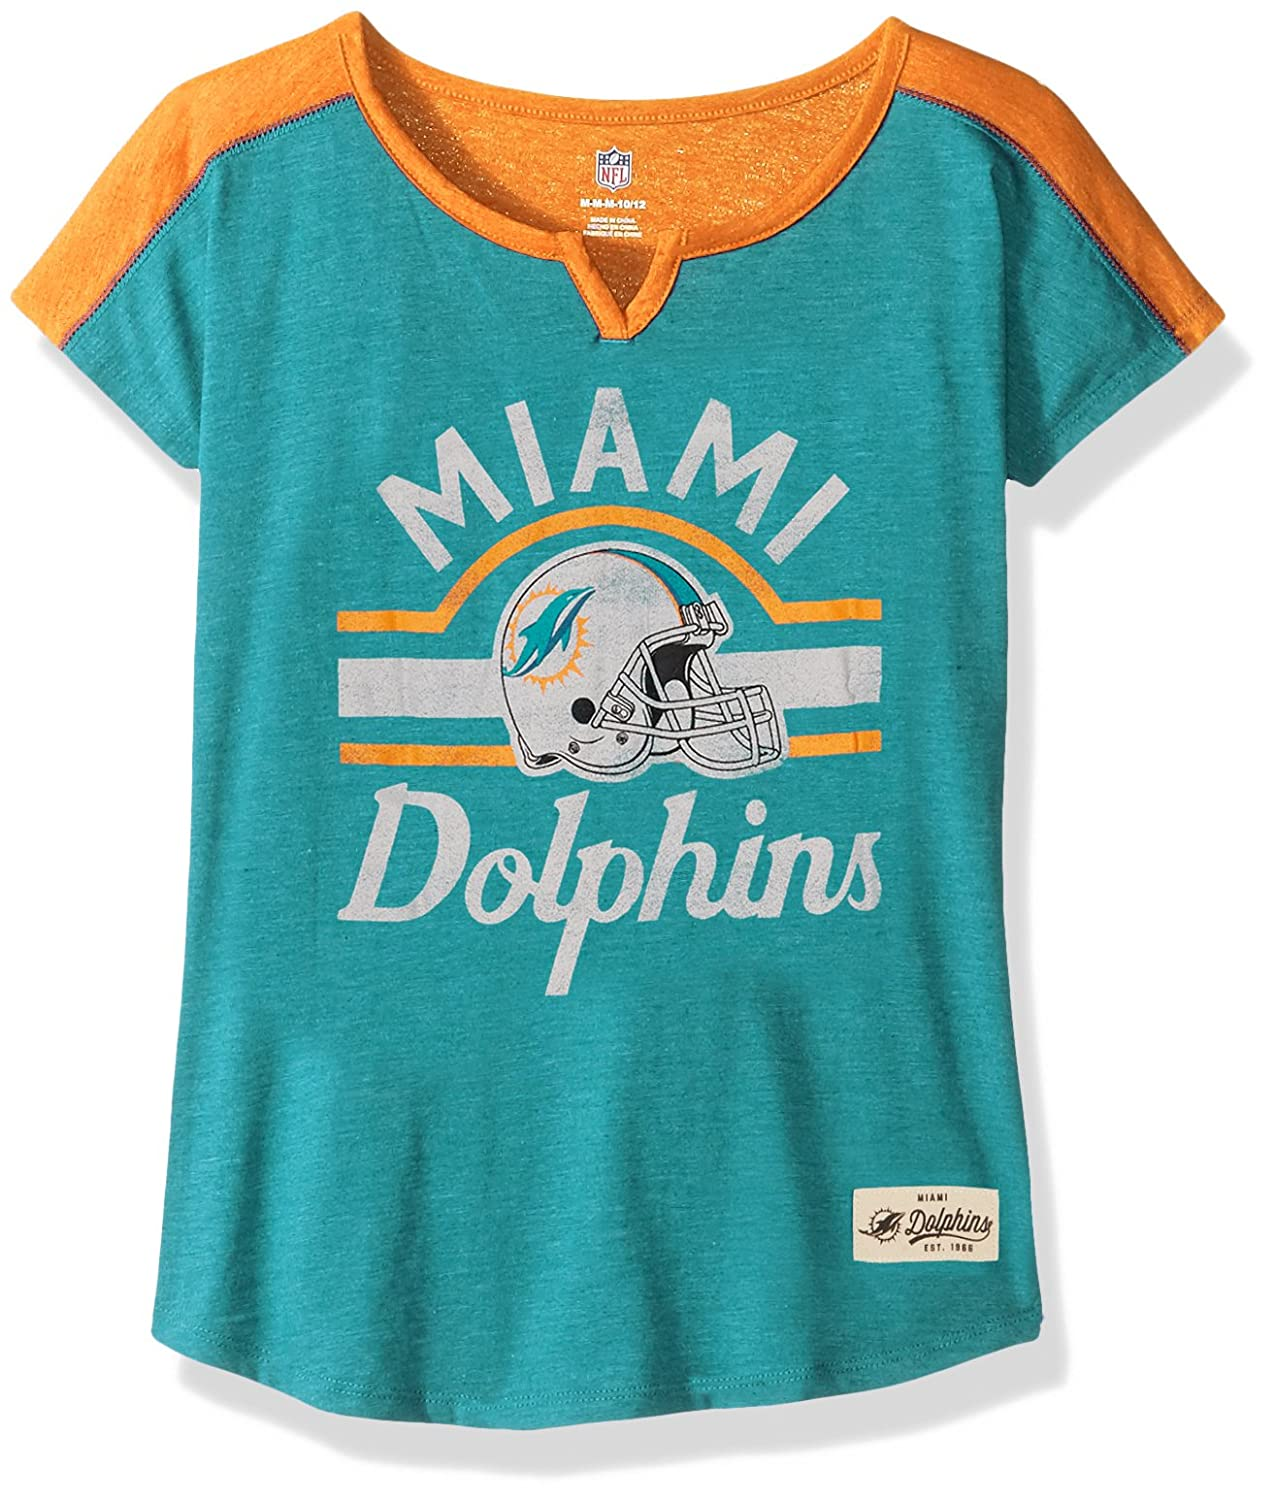 Outerstuff NFL Girls 7-16Tribute Football Tee